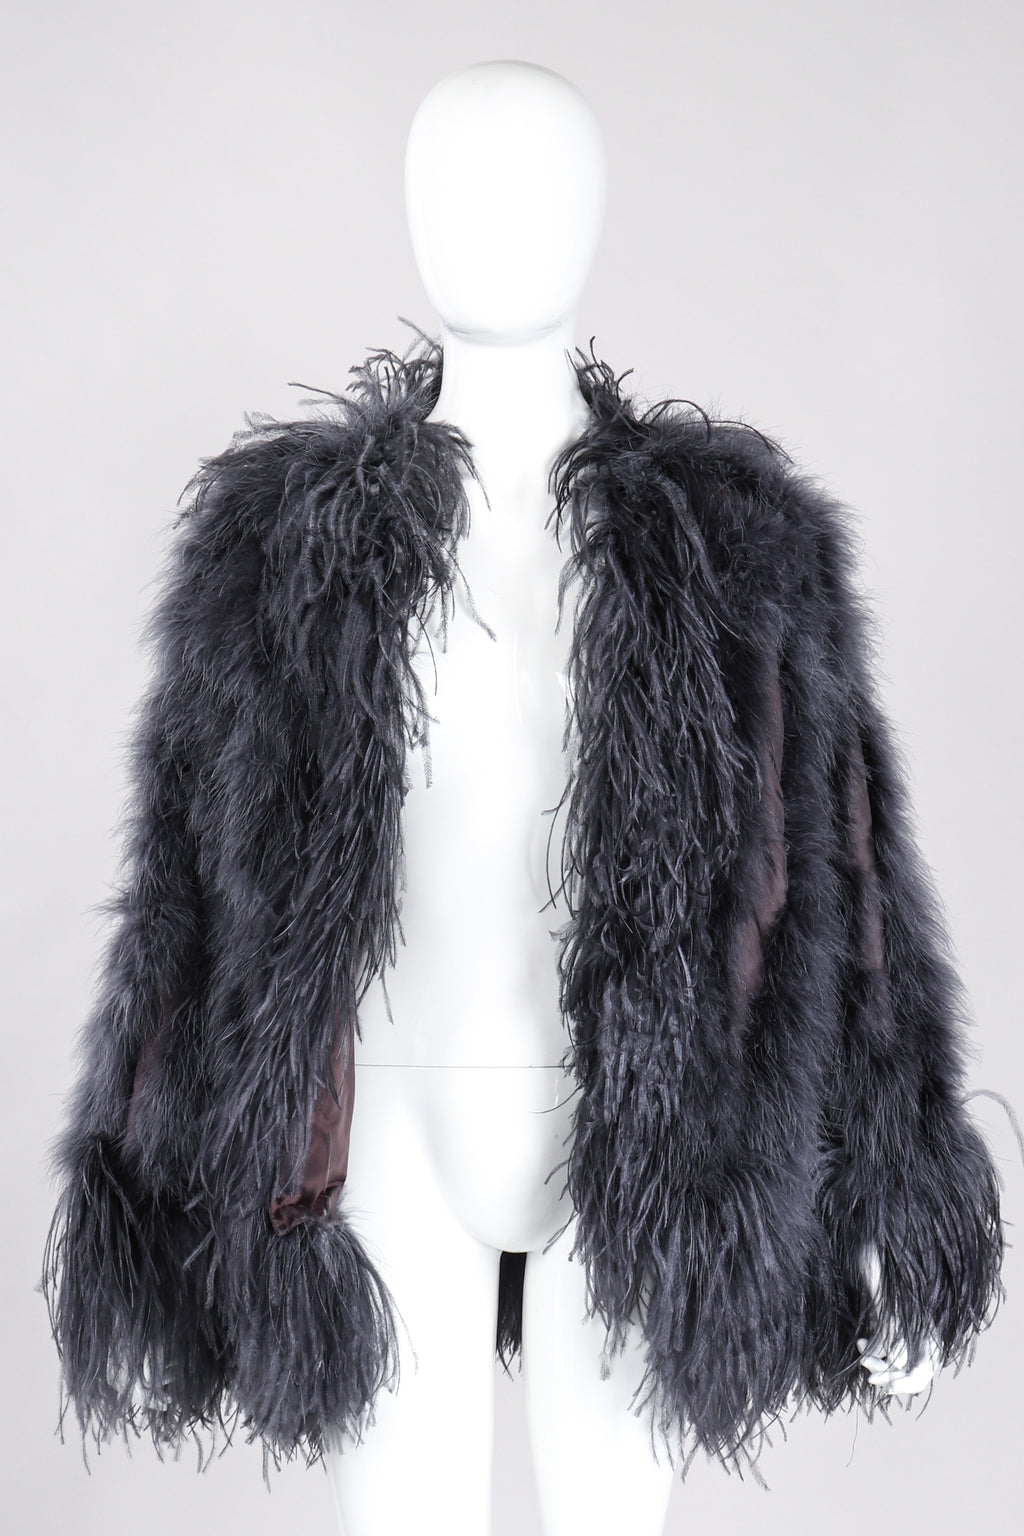 20fbf3e1d95 Recess Los Angeles Vintage YSL Yves Saint Laurent 70s Liberation Collection  Marabou & Ostrich Feather Glam